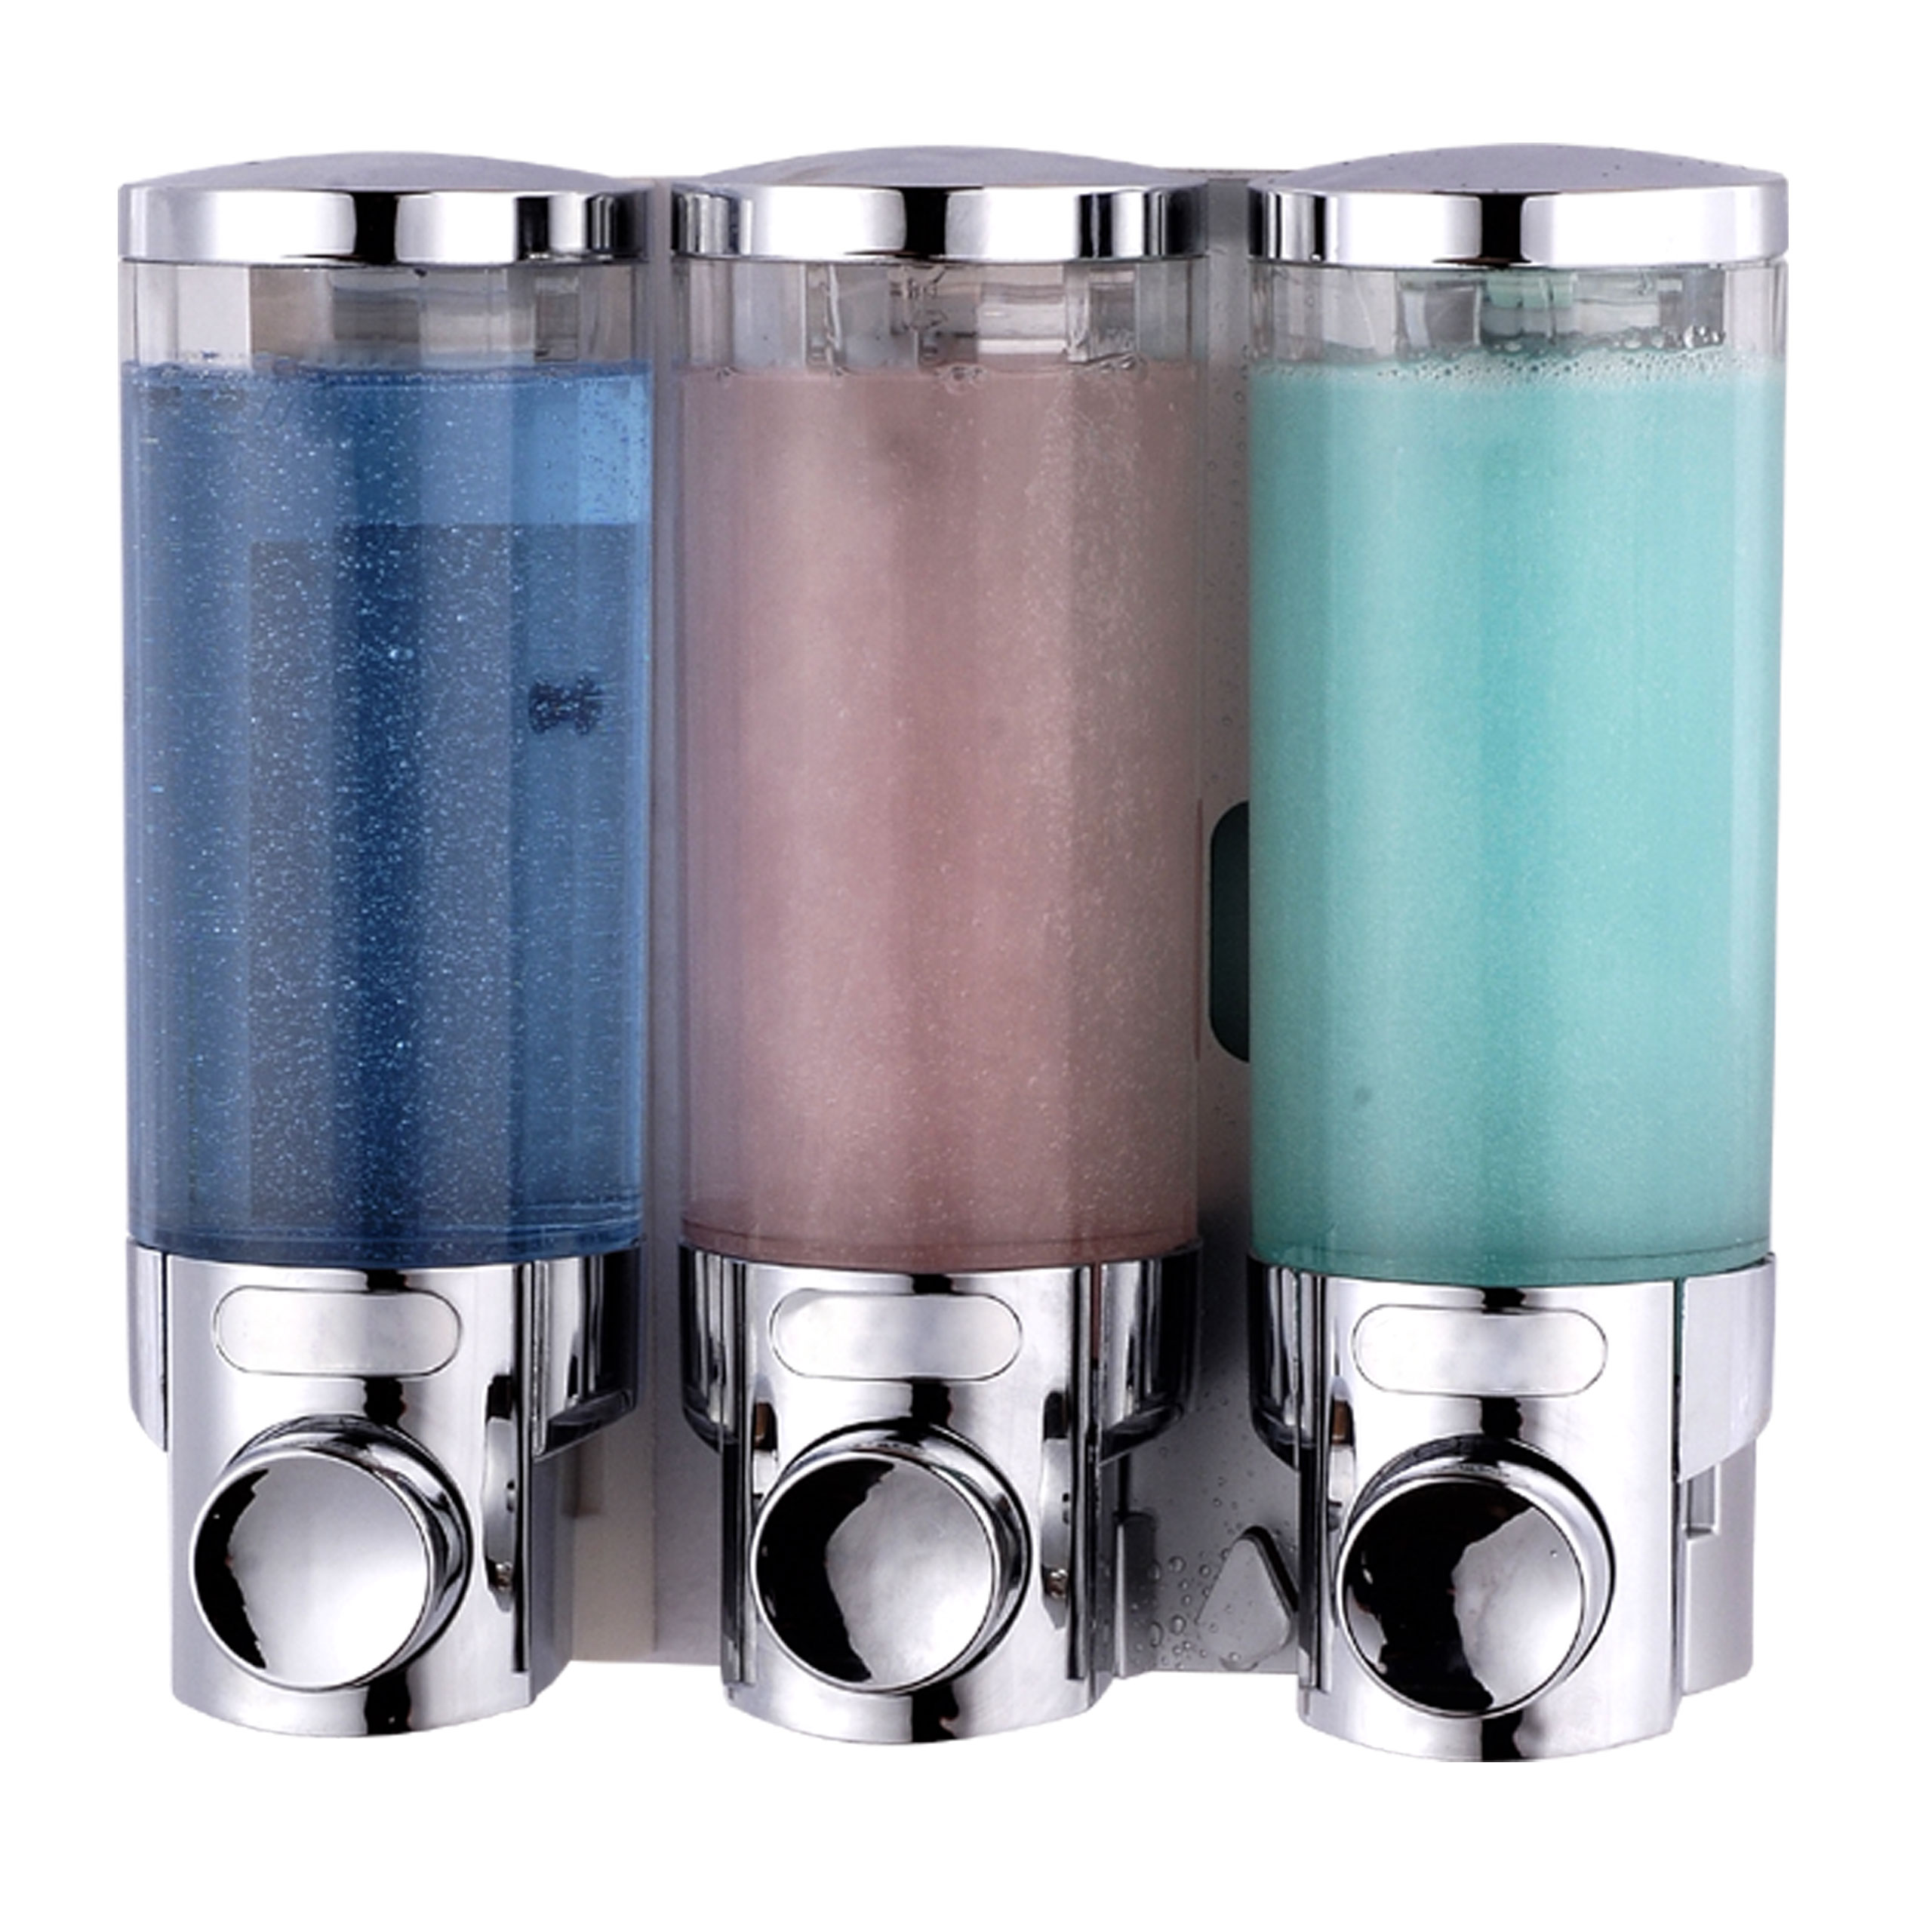 Soap And Shampoo Dispensers For Showers Transparent Shower Soap Dispenser Triple Abs Plastic